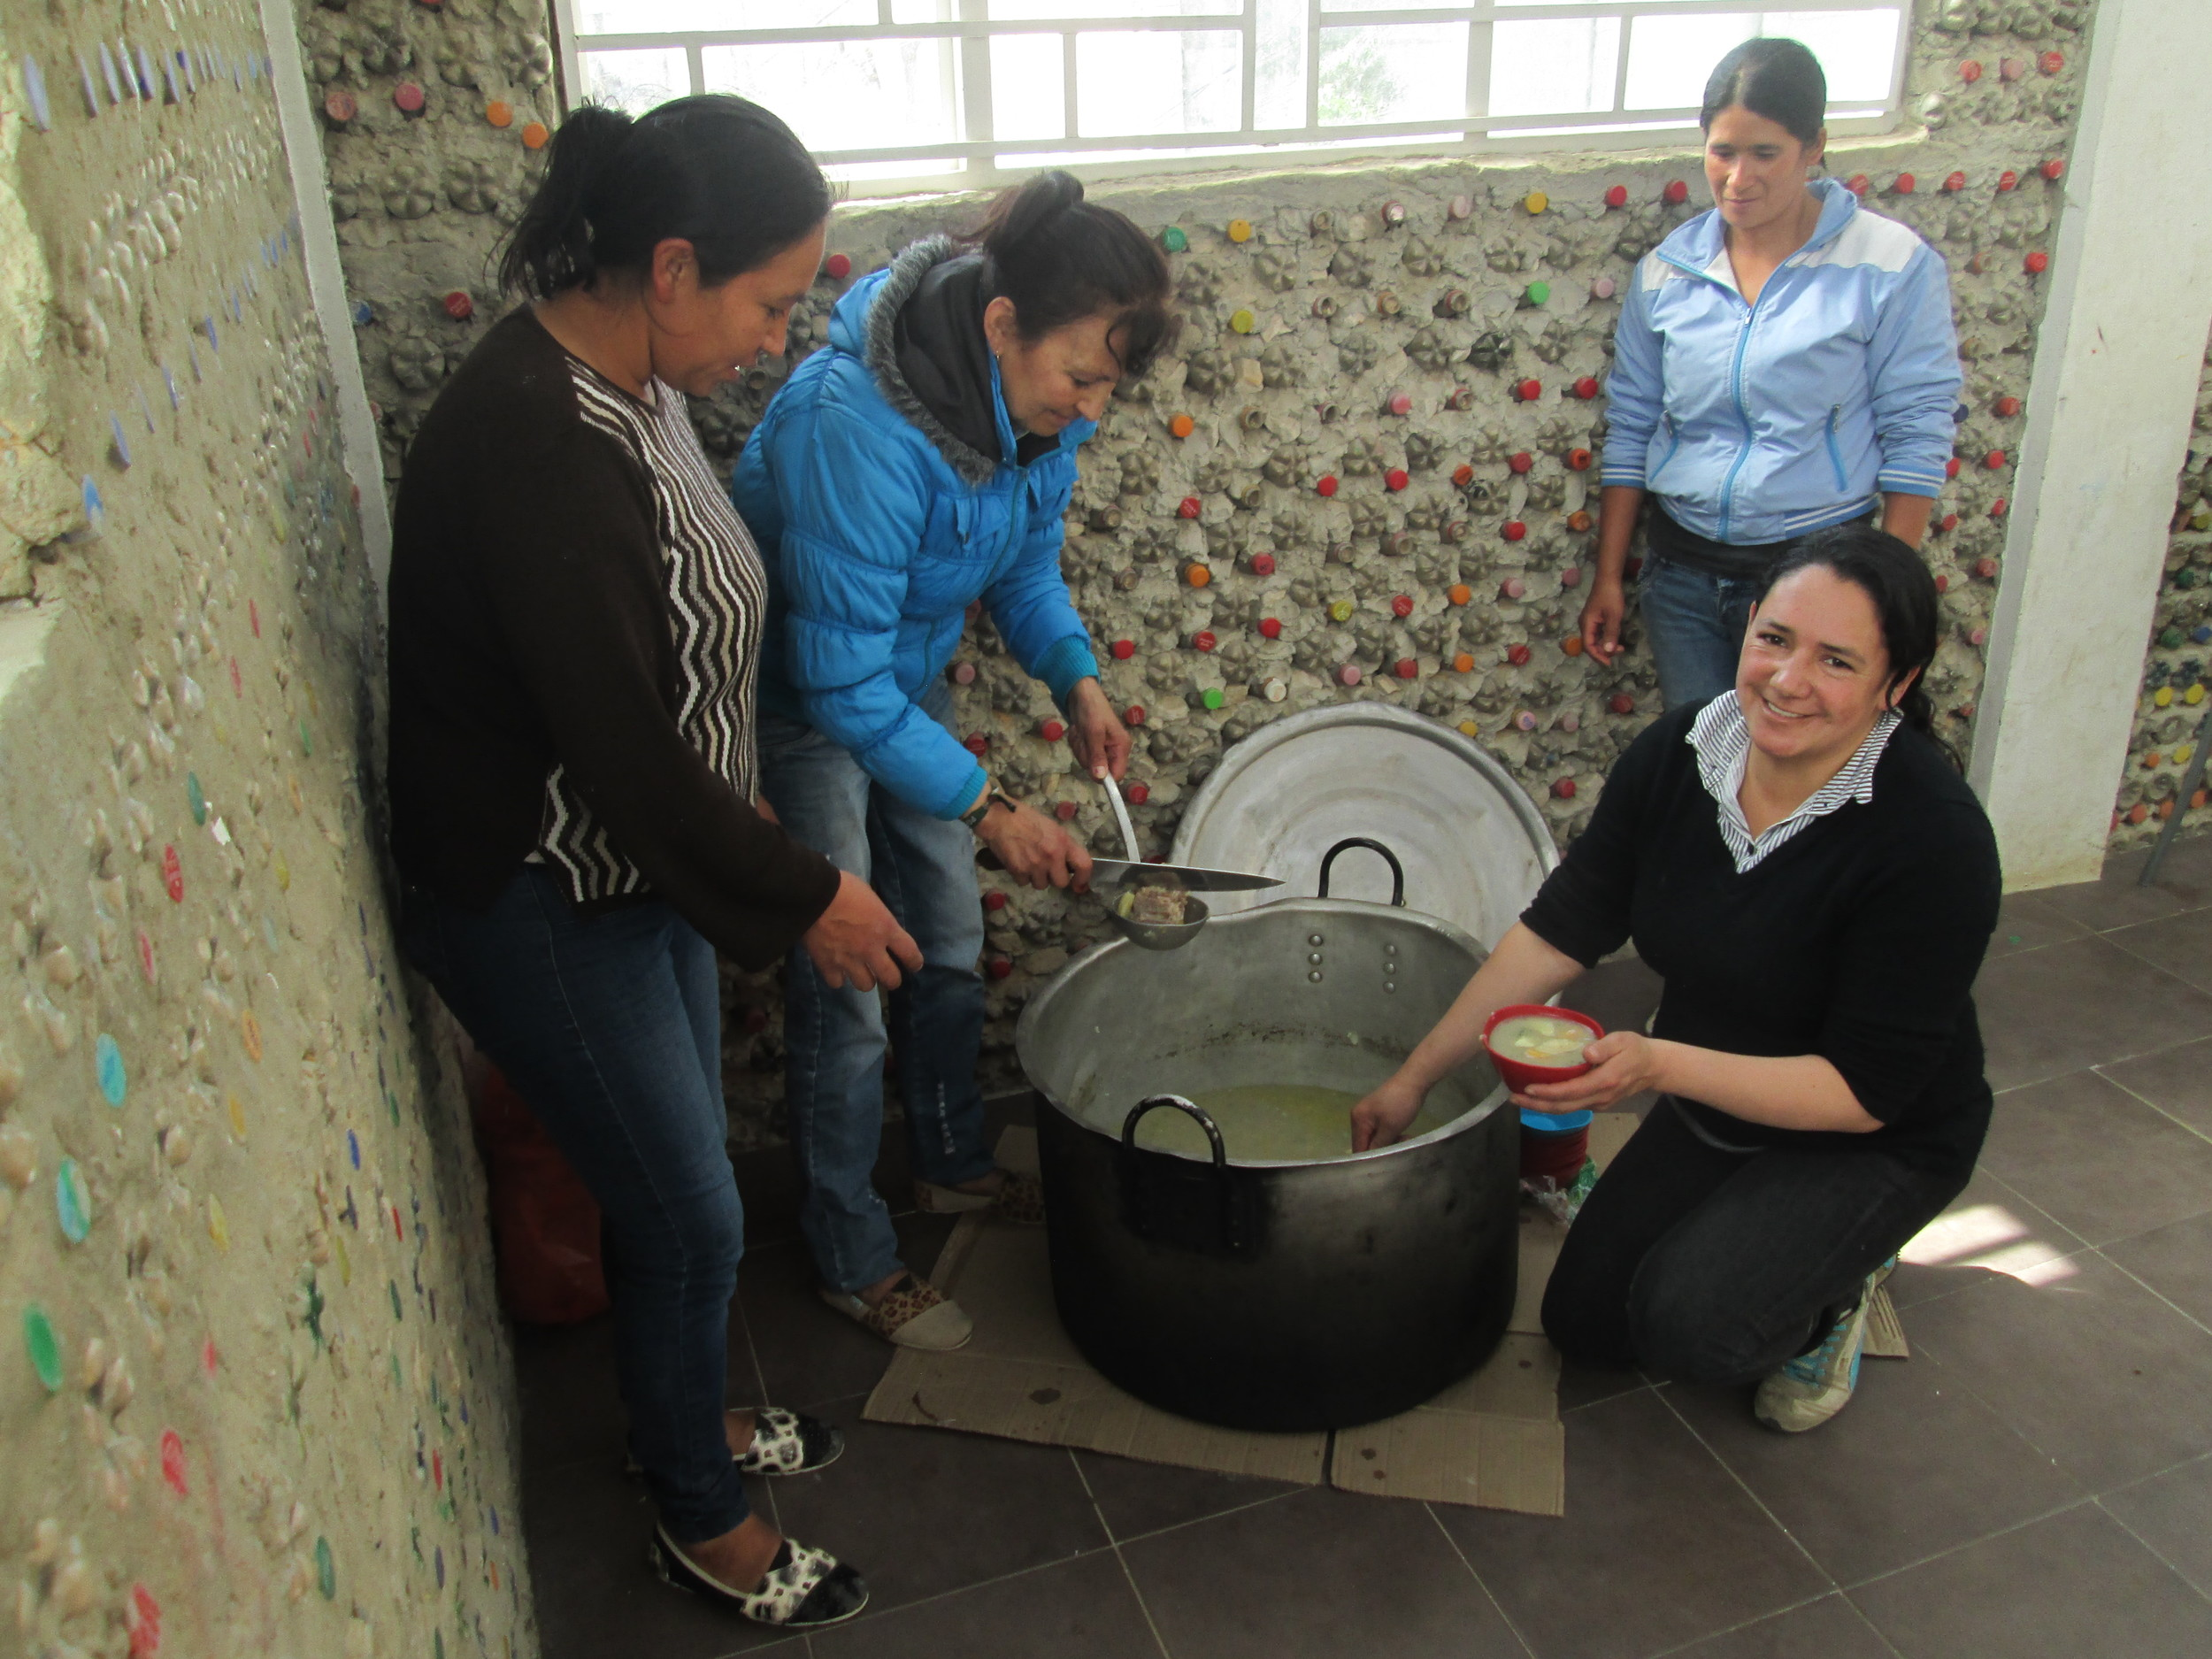 Our coordinator in Cazucá, Nohora Guerrero, and some of the women from the community prepared a delicious sancocho for everyone.